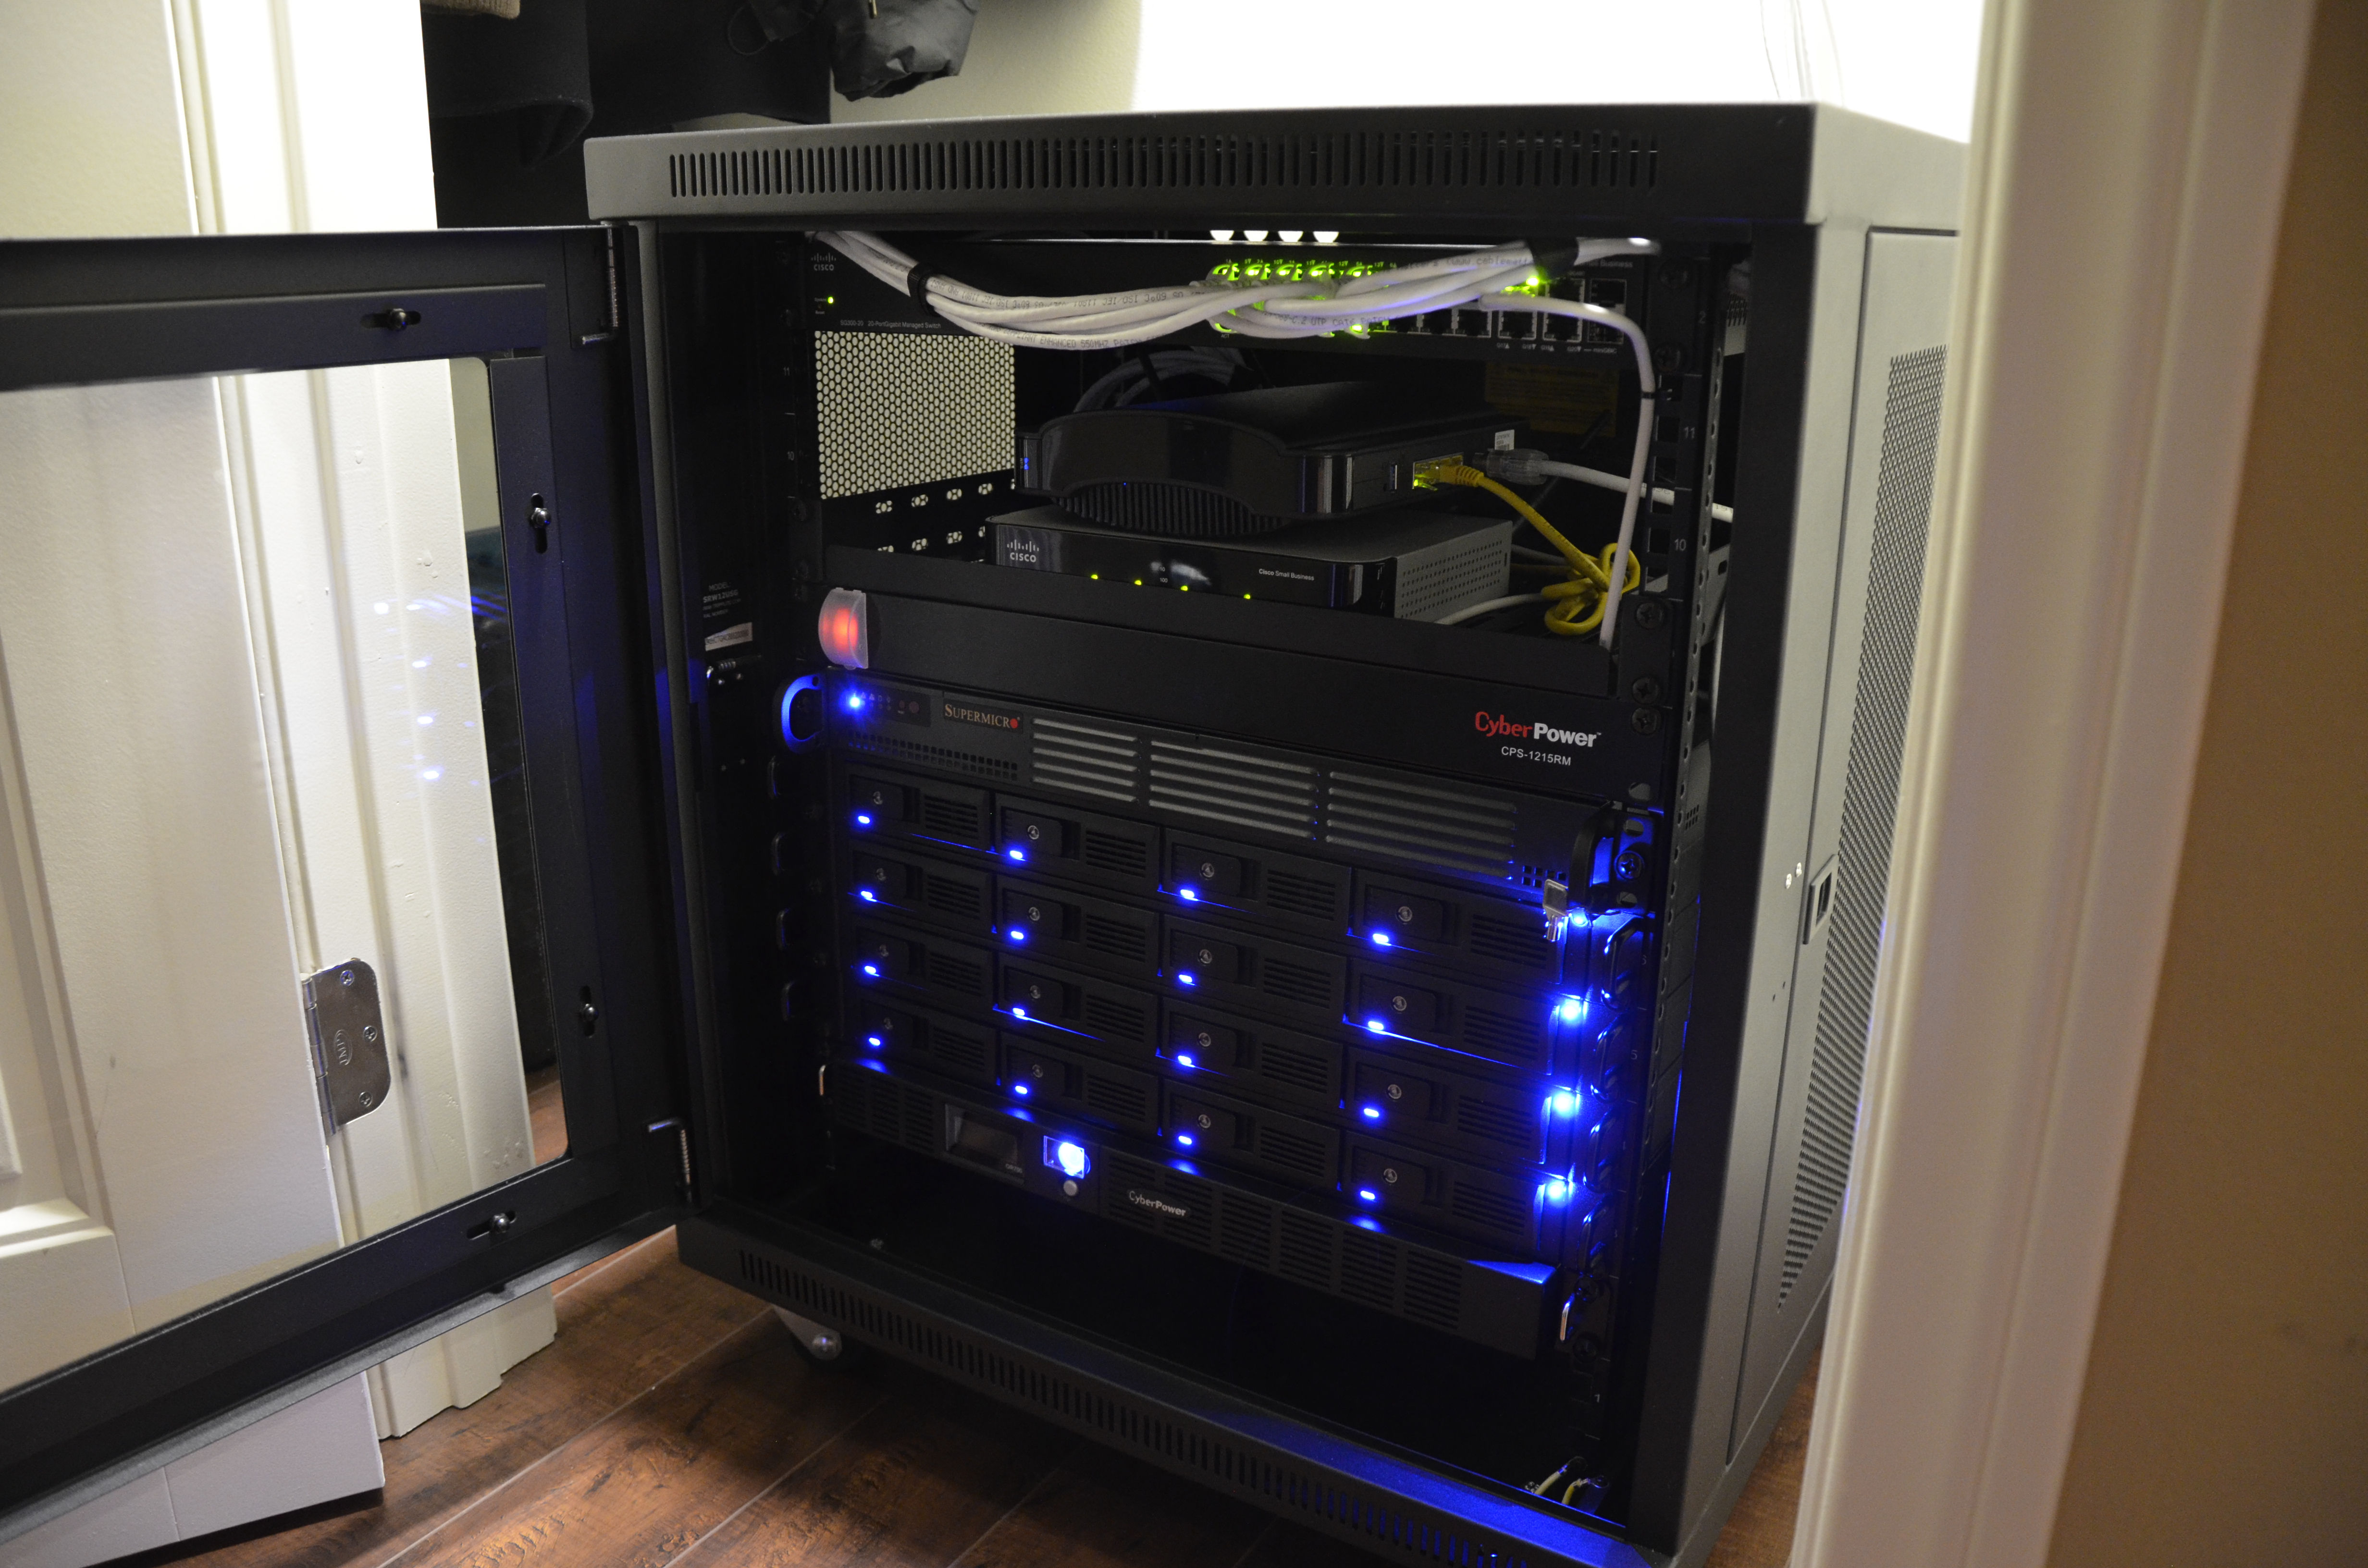 yourself it lab rack i cheap y home esxi server own easy or bottom cabinet your for diy d blog vmware and do build servers